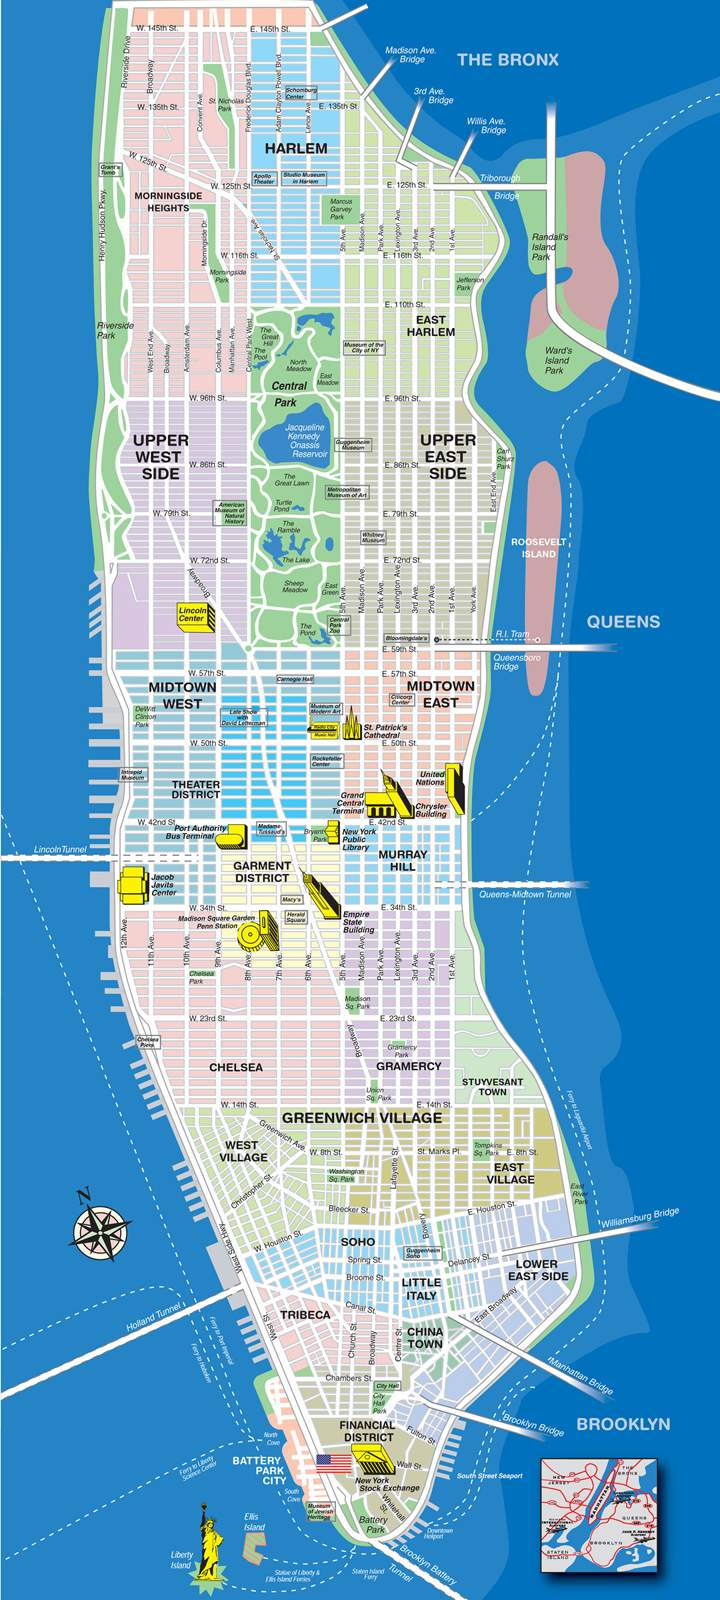 Manhattan Ny Map Large Manhattan Maps for Free Download and Print | High Resolution  Manhattan Ny Map